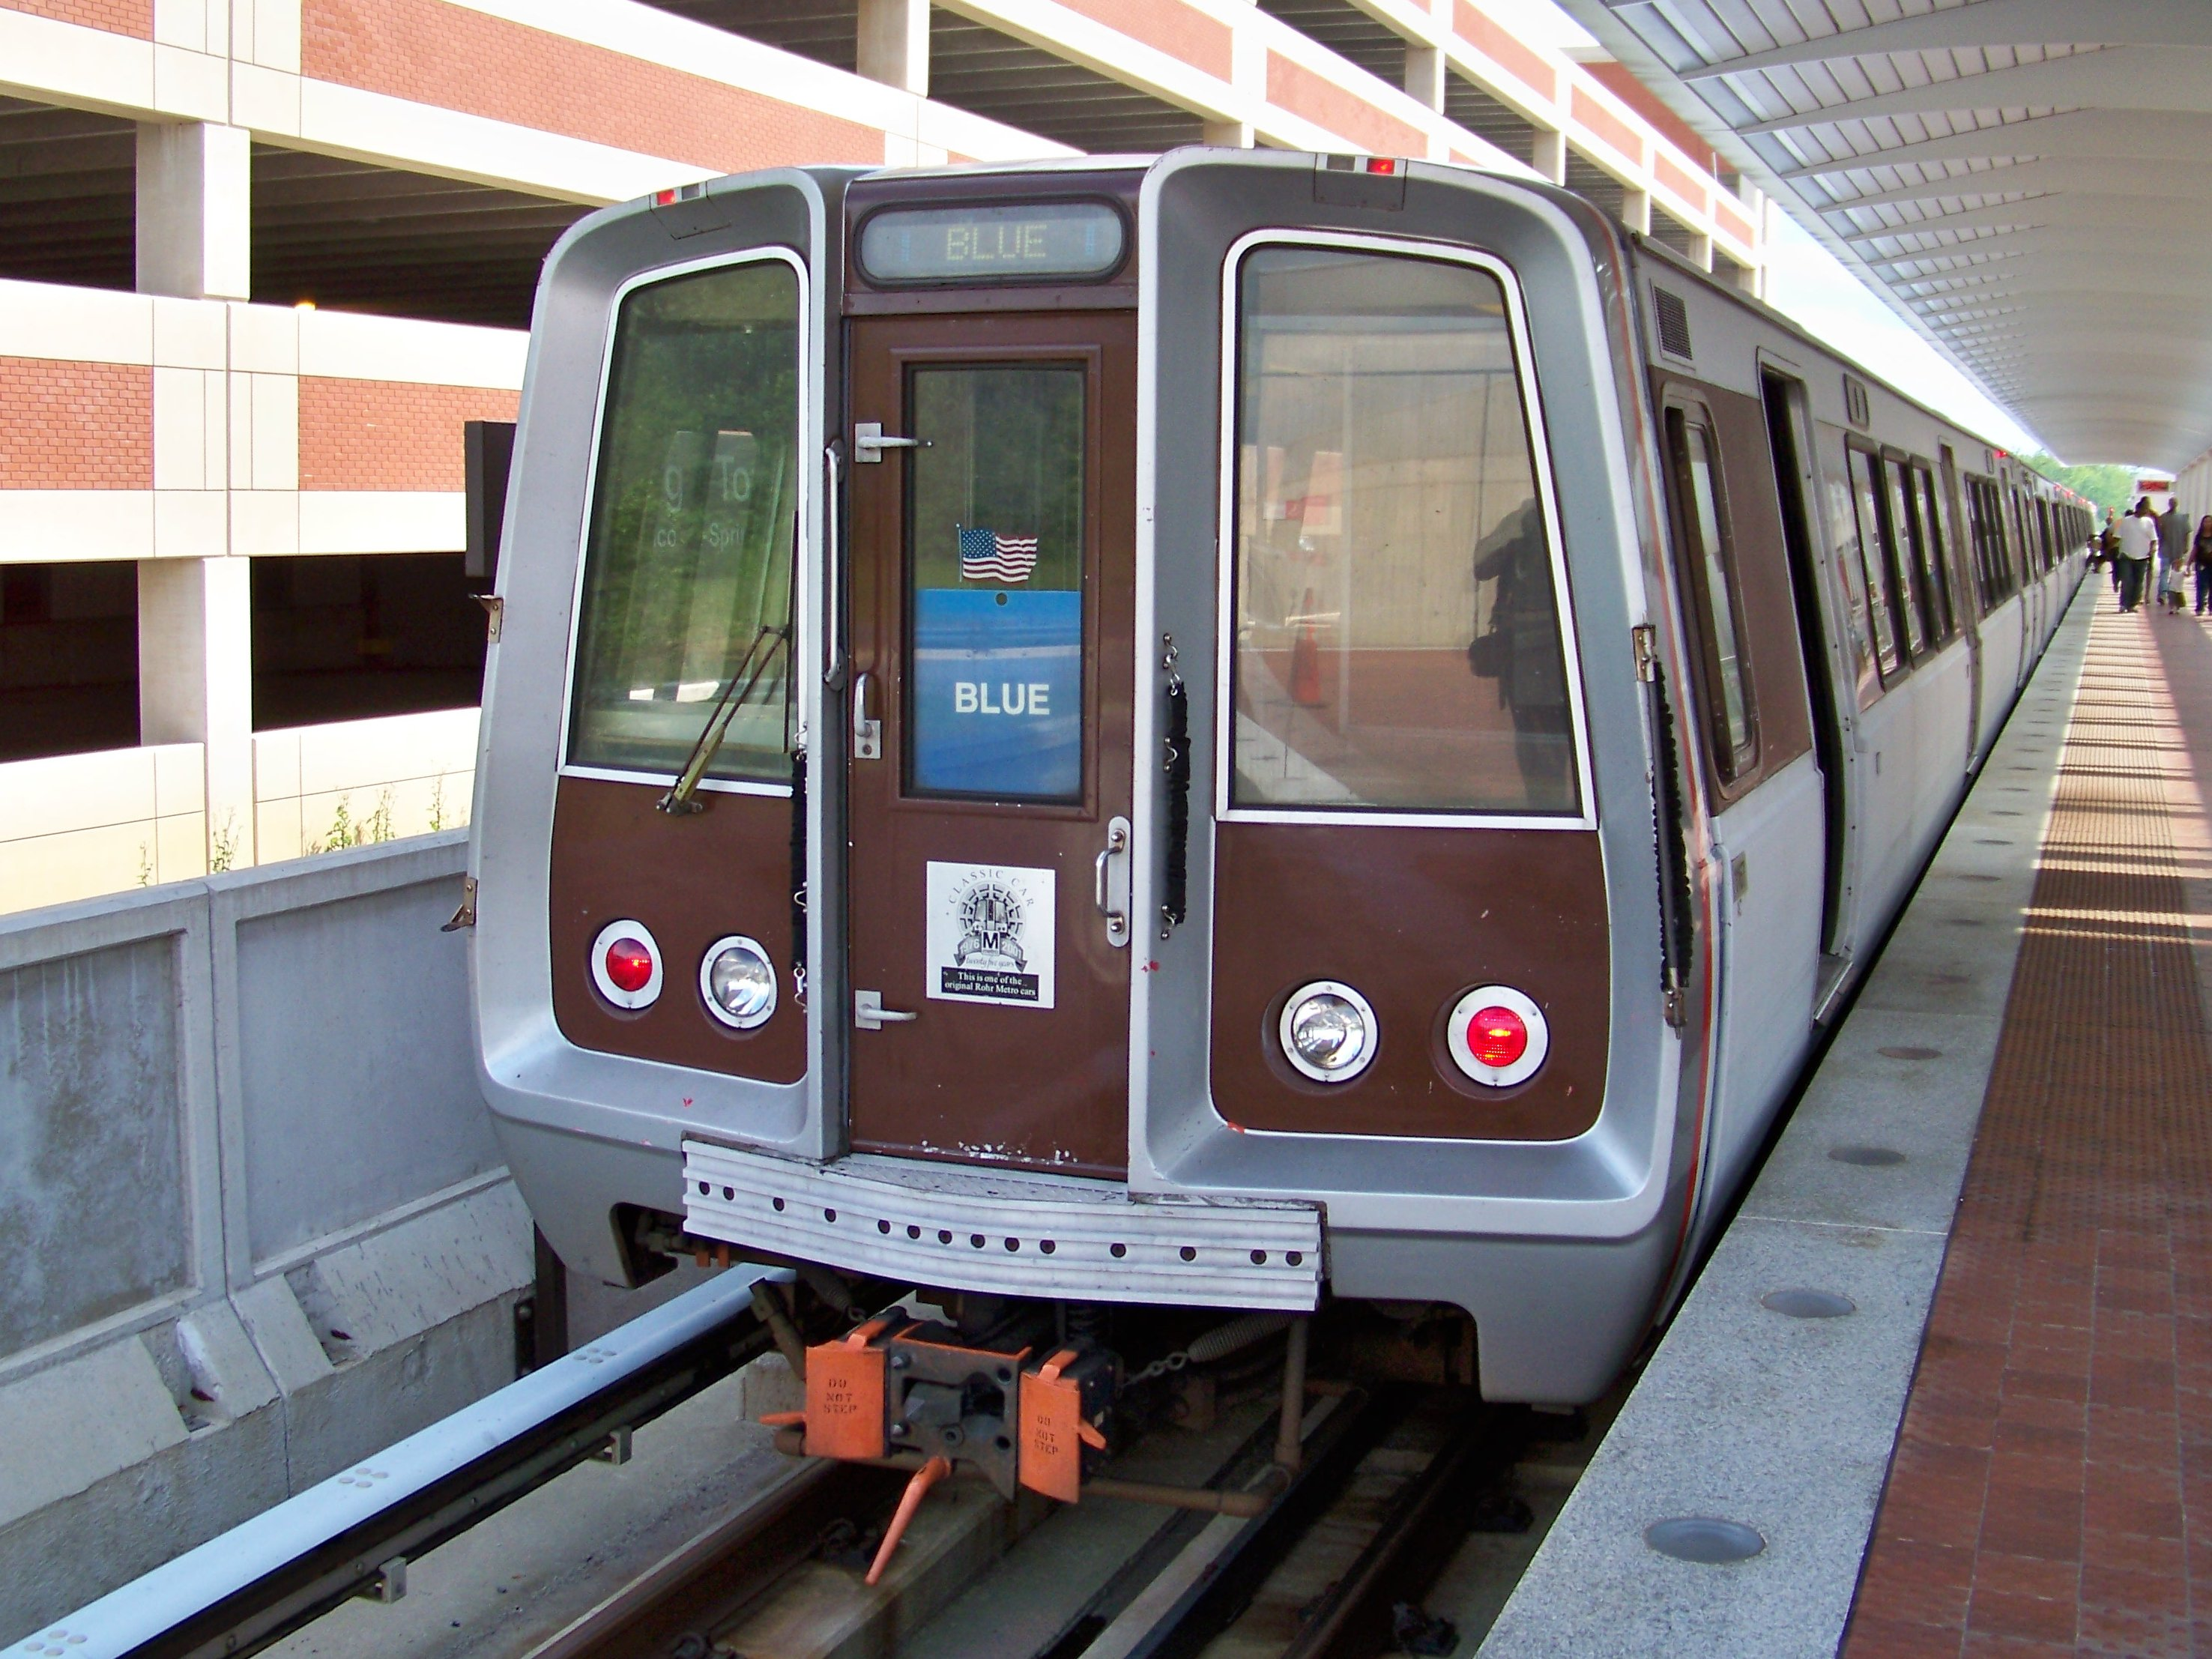 The Schumin Web » Identifying Metro Rail Cars